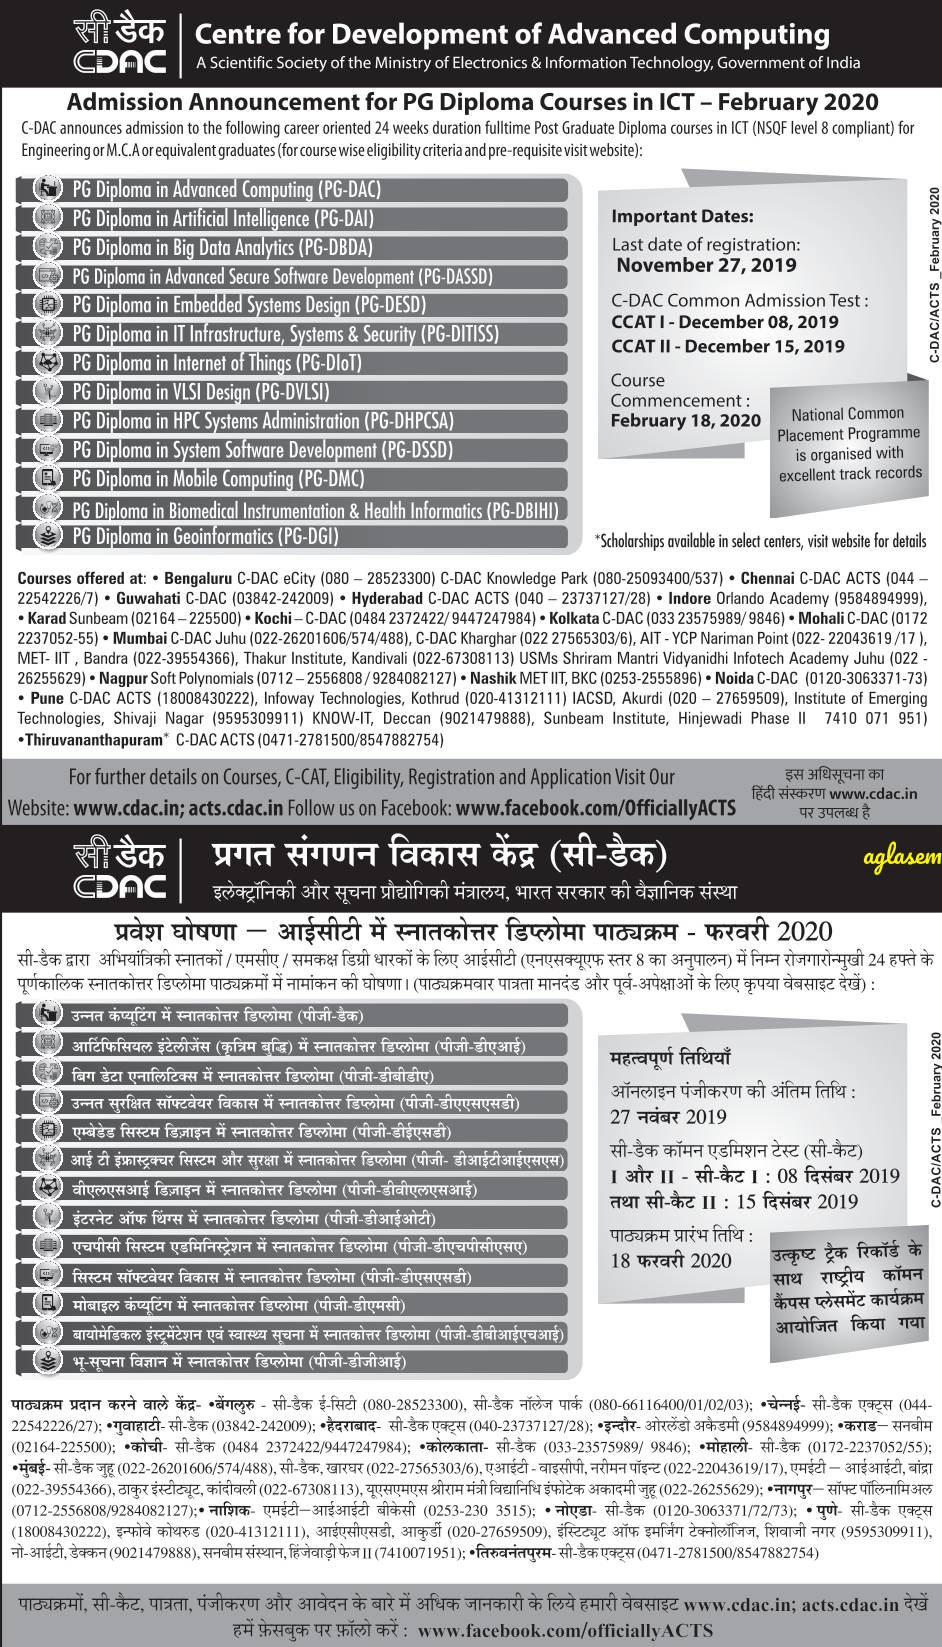 CDAC Exam Date announced; Know complete C-CAT December 2019 for February 2020 schedule